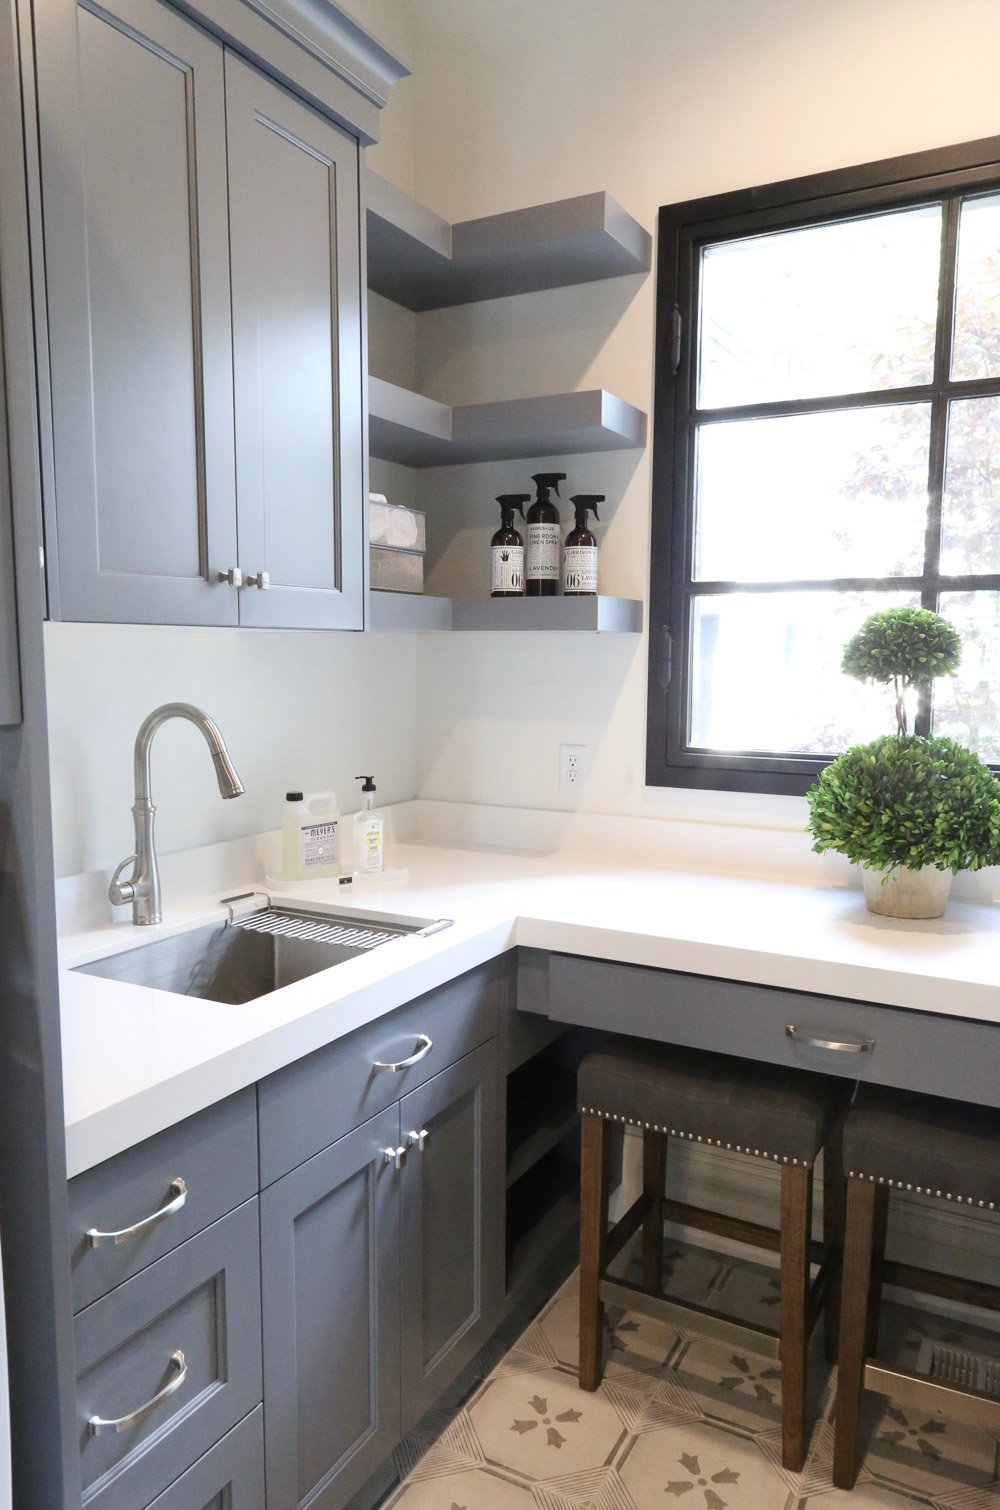 Cabinet Color is Benjamin Moore Trout Gray